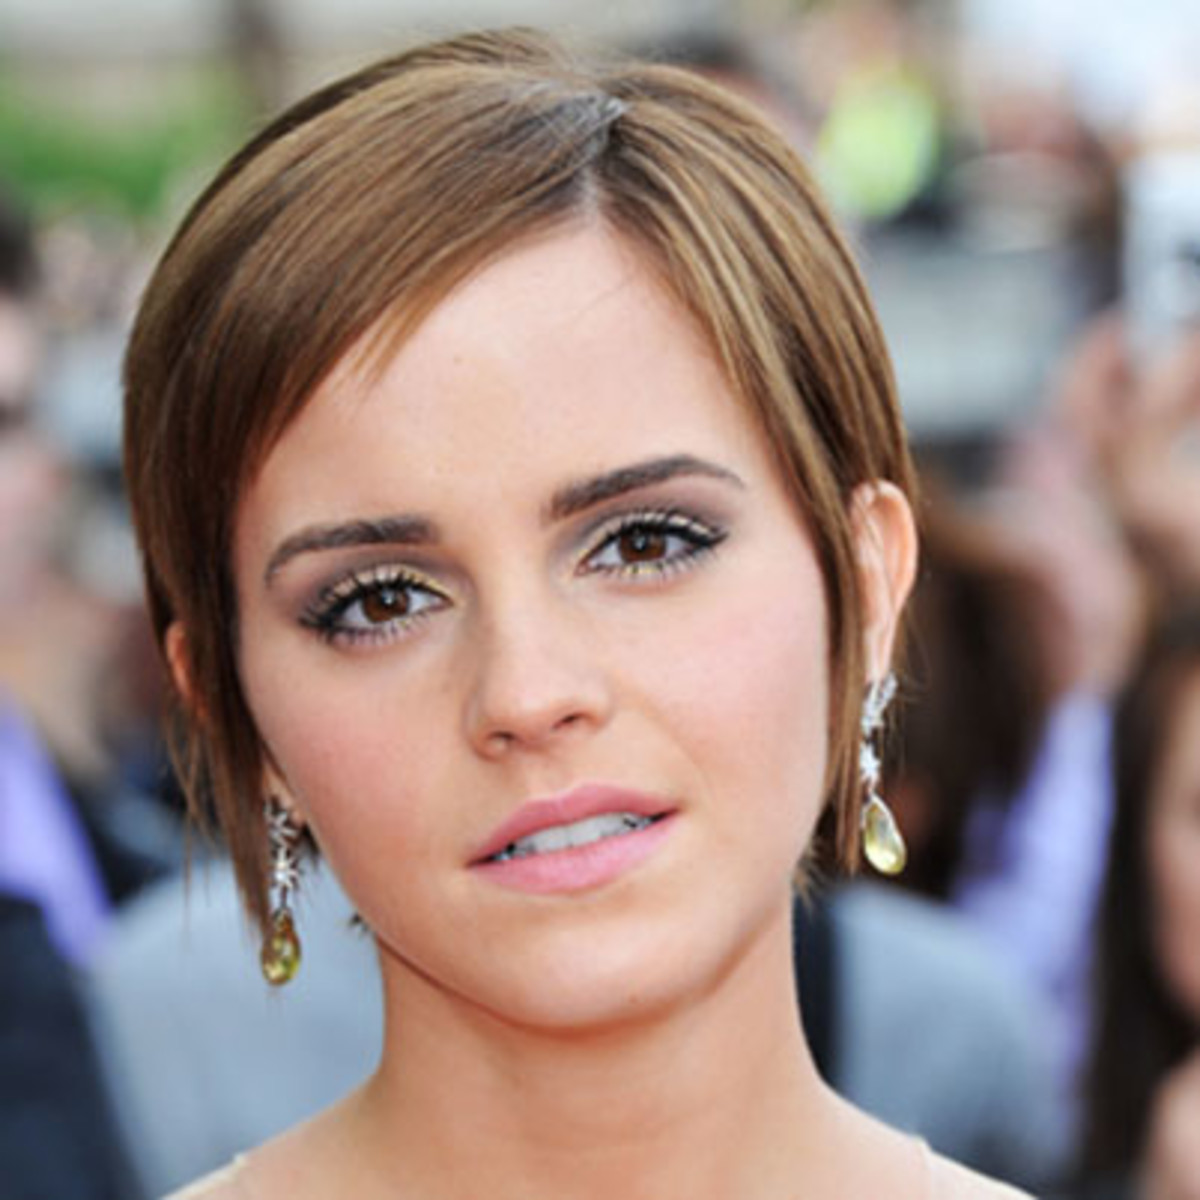 Emma Watson - Age, Movies & Life - Biography